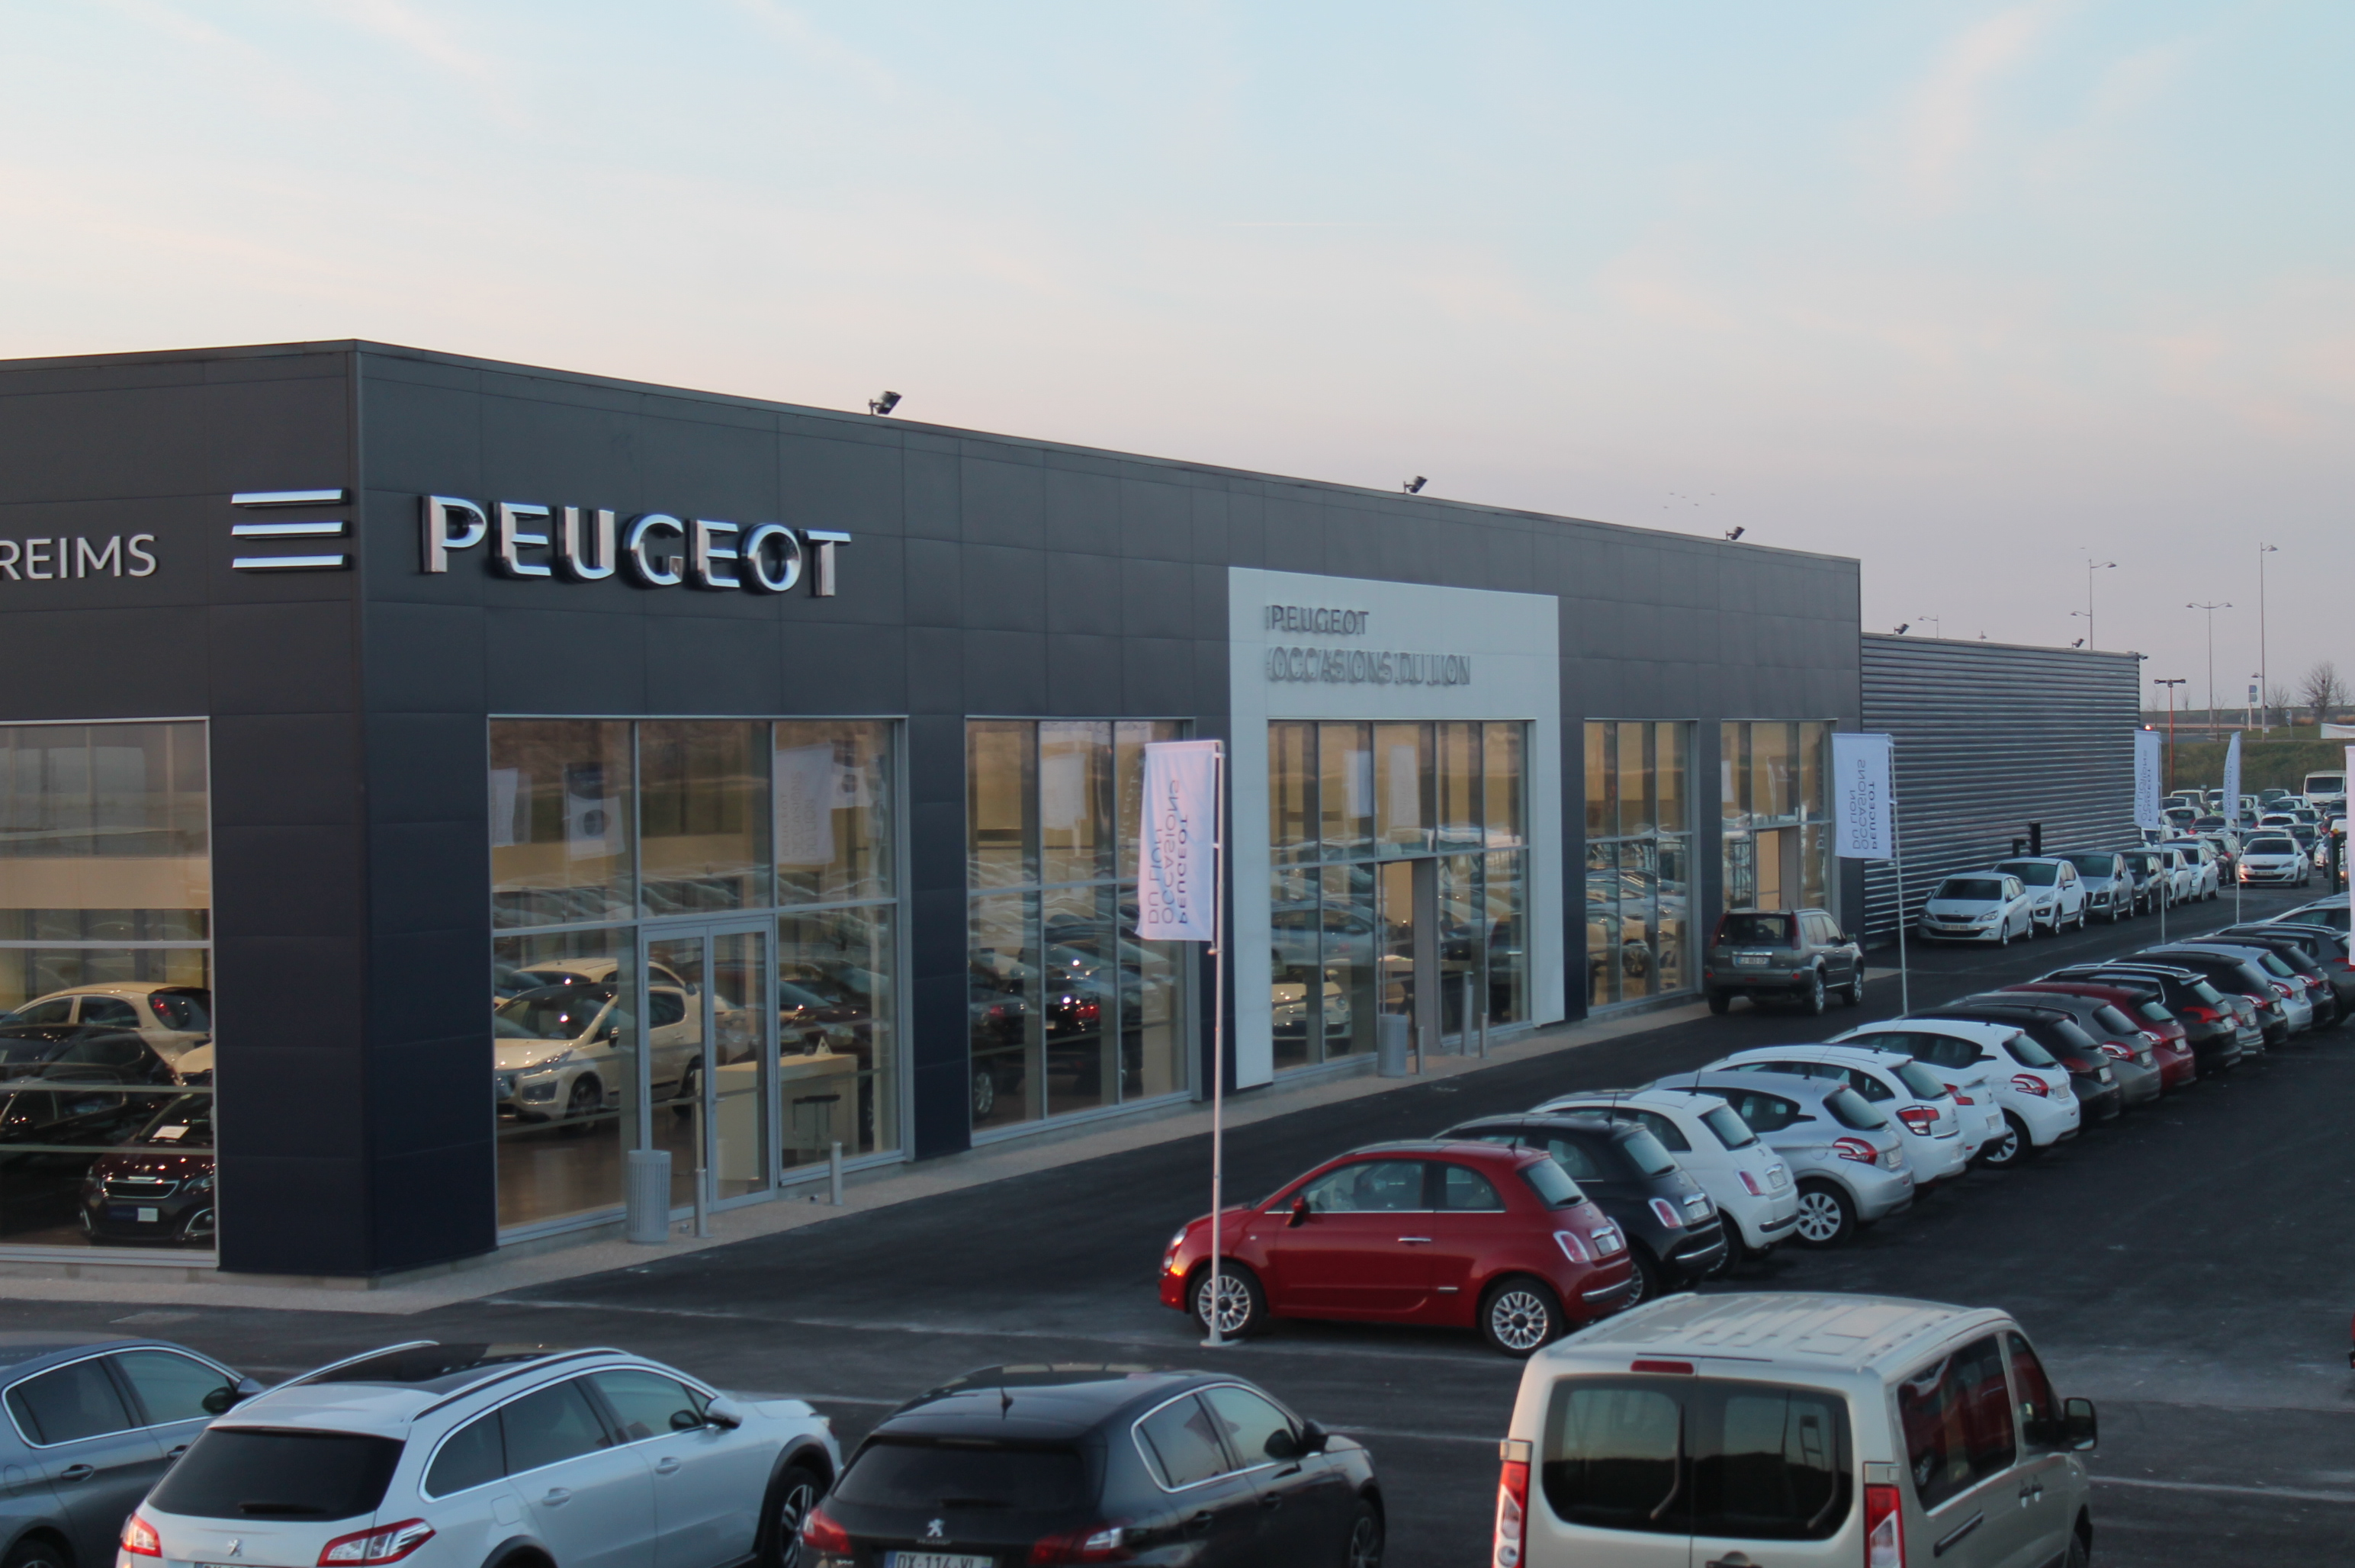 pr sentation de la soci t peugeot reims. Black Bedroom Furniture Sets. Home Design Ideas